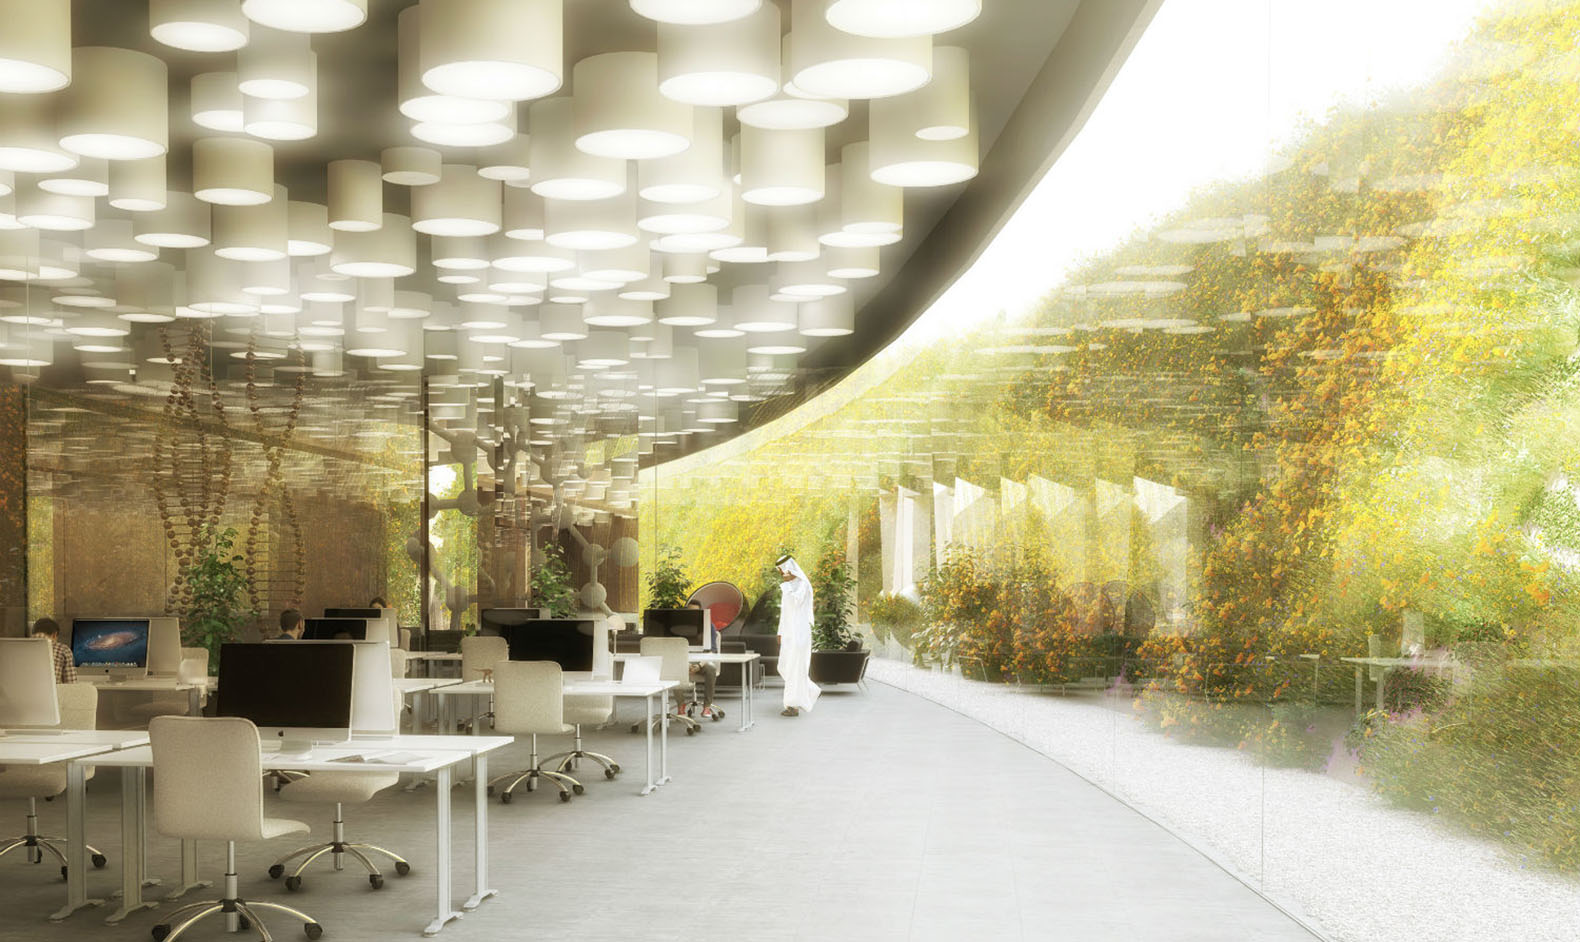 Egypt S New Science City International An Oasis Of Interiors Inside Ideas Interiors design about Everything [magnanprojects.com]